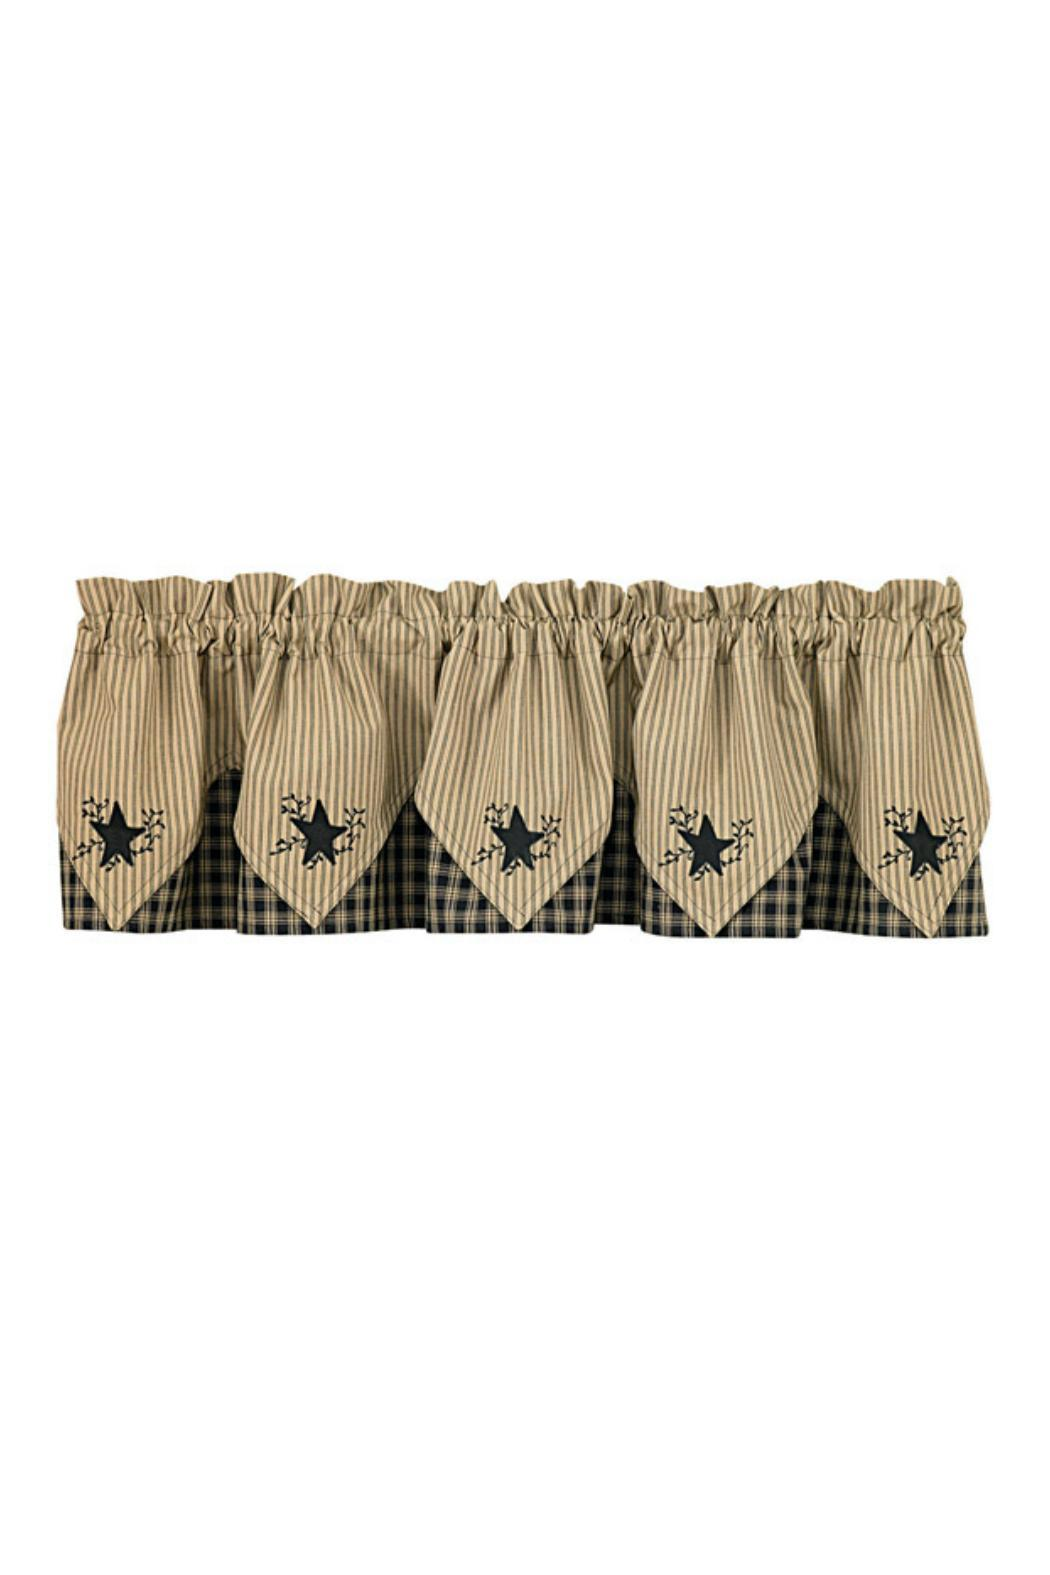 Park Designs Star Embroidered Valance - Main Image